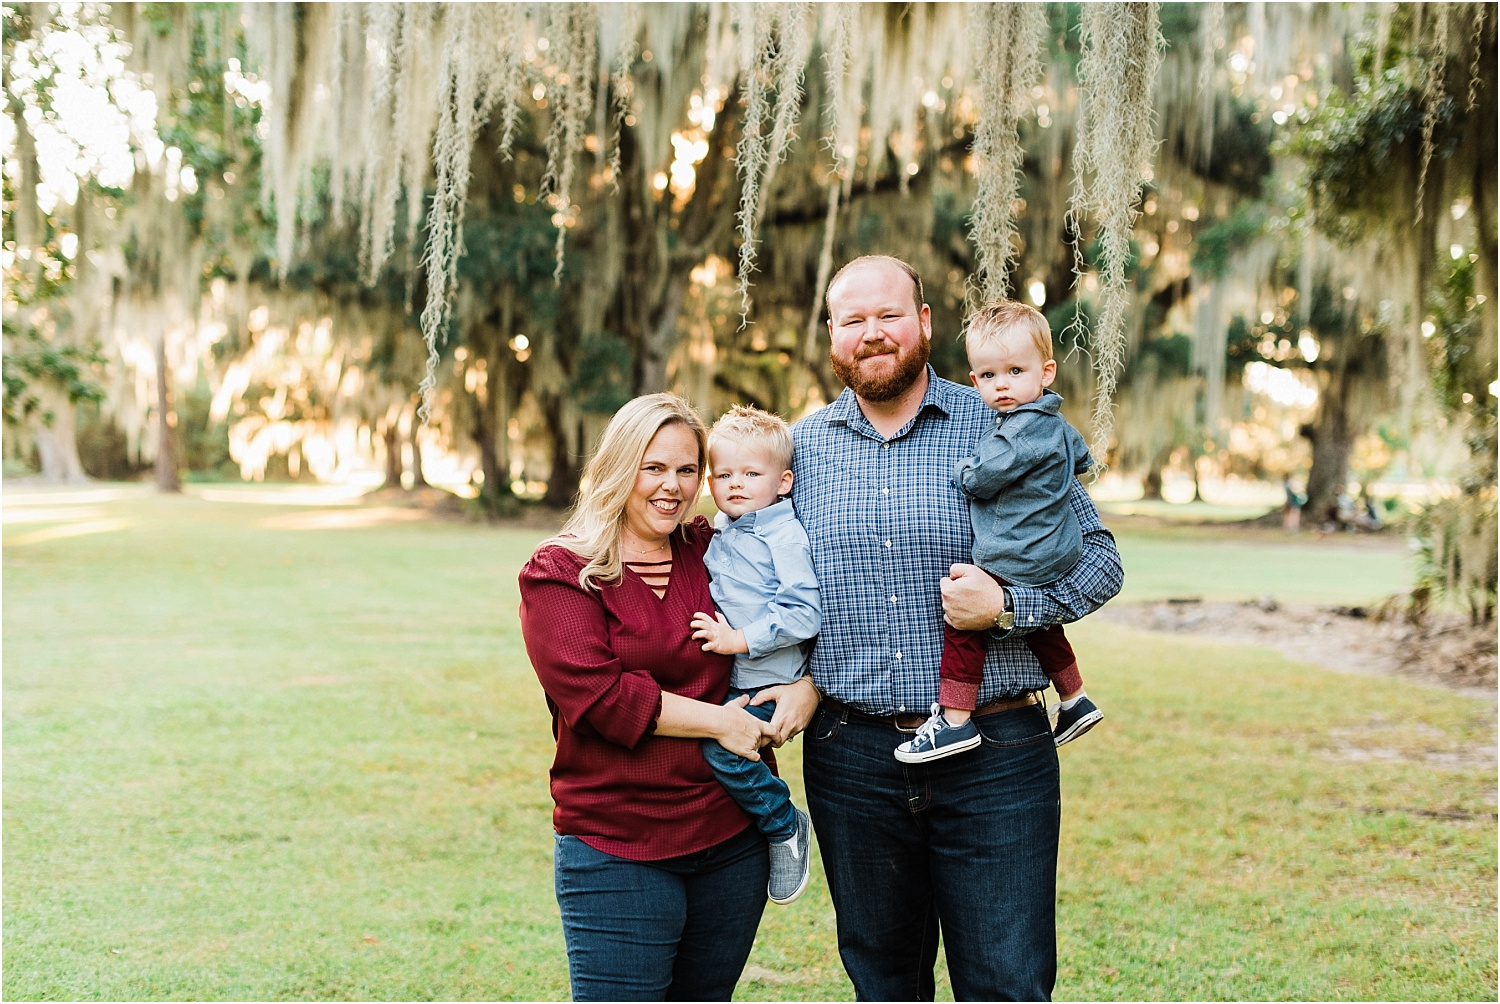 Smalley Family Fall 2019-Fountainbleau-State-Park-Family-Photos_Gabby Chapin Photography_0004_BLOG.jpg